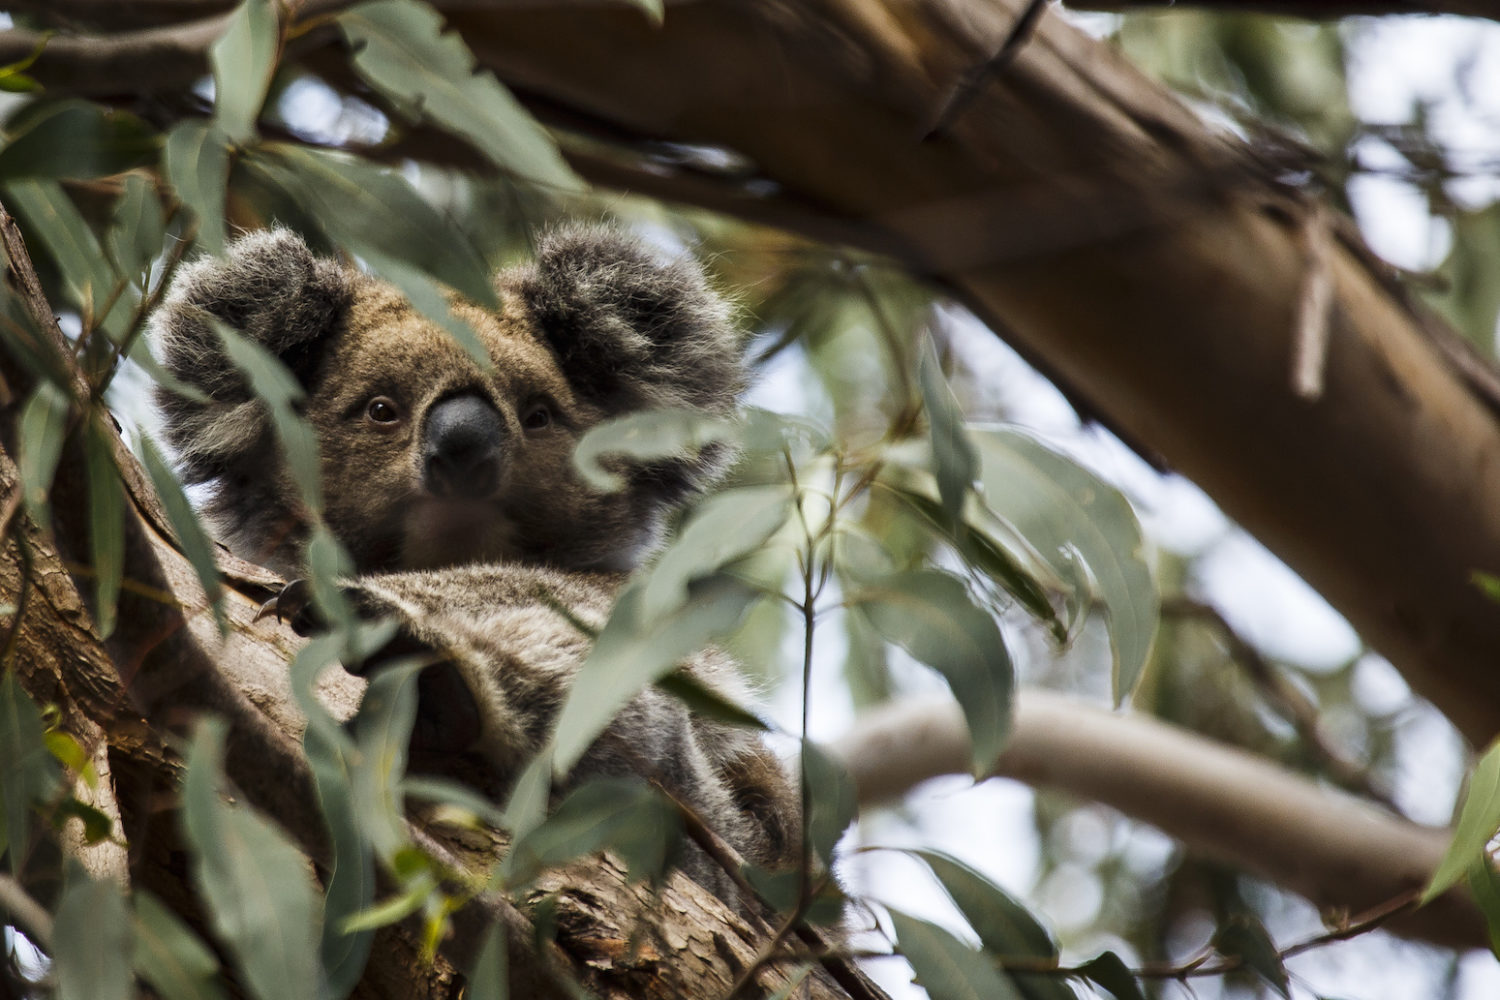 One of the unique and exclusive Australian experiences is seeing a koala on Kangaroo Island